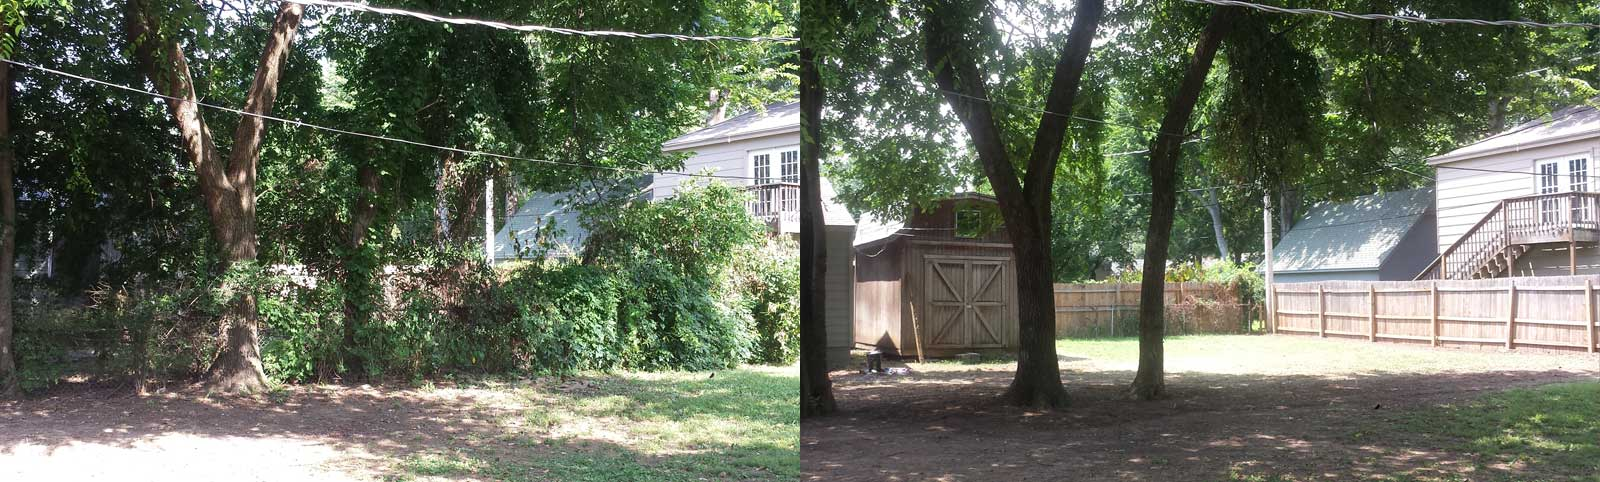 Fenceline Cleanup: Before and After